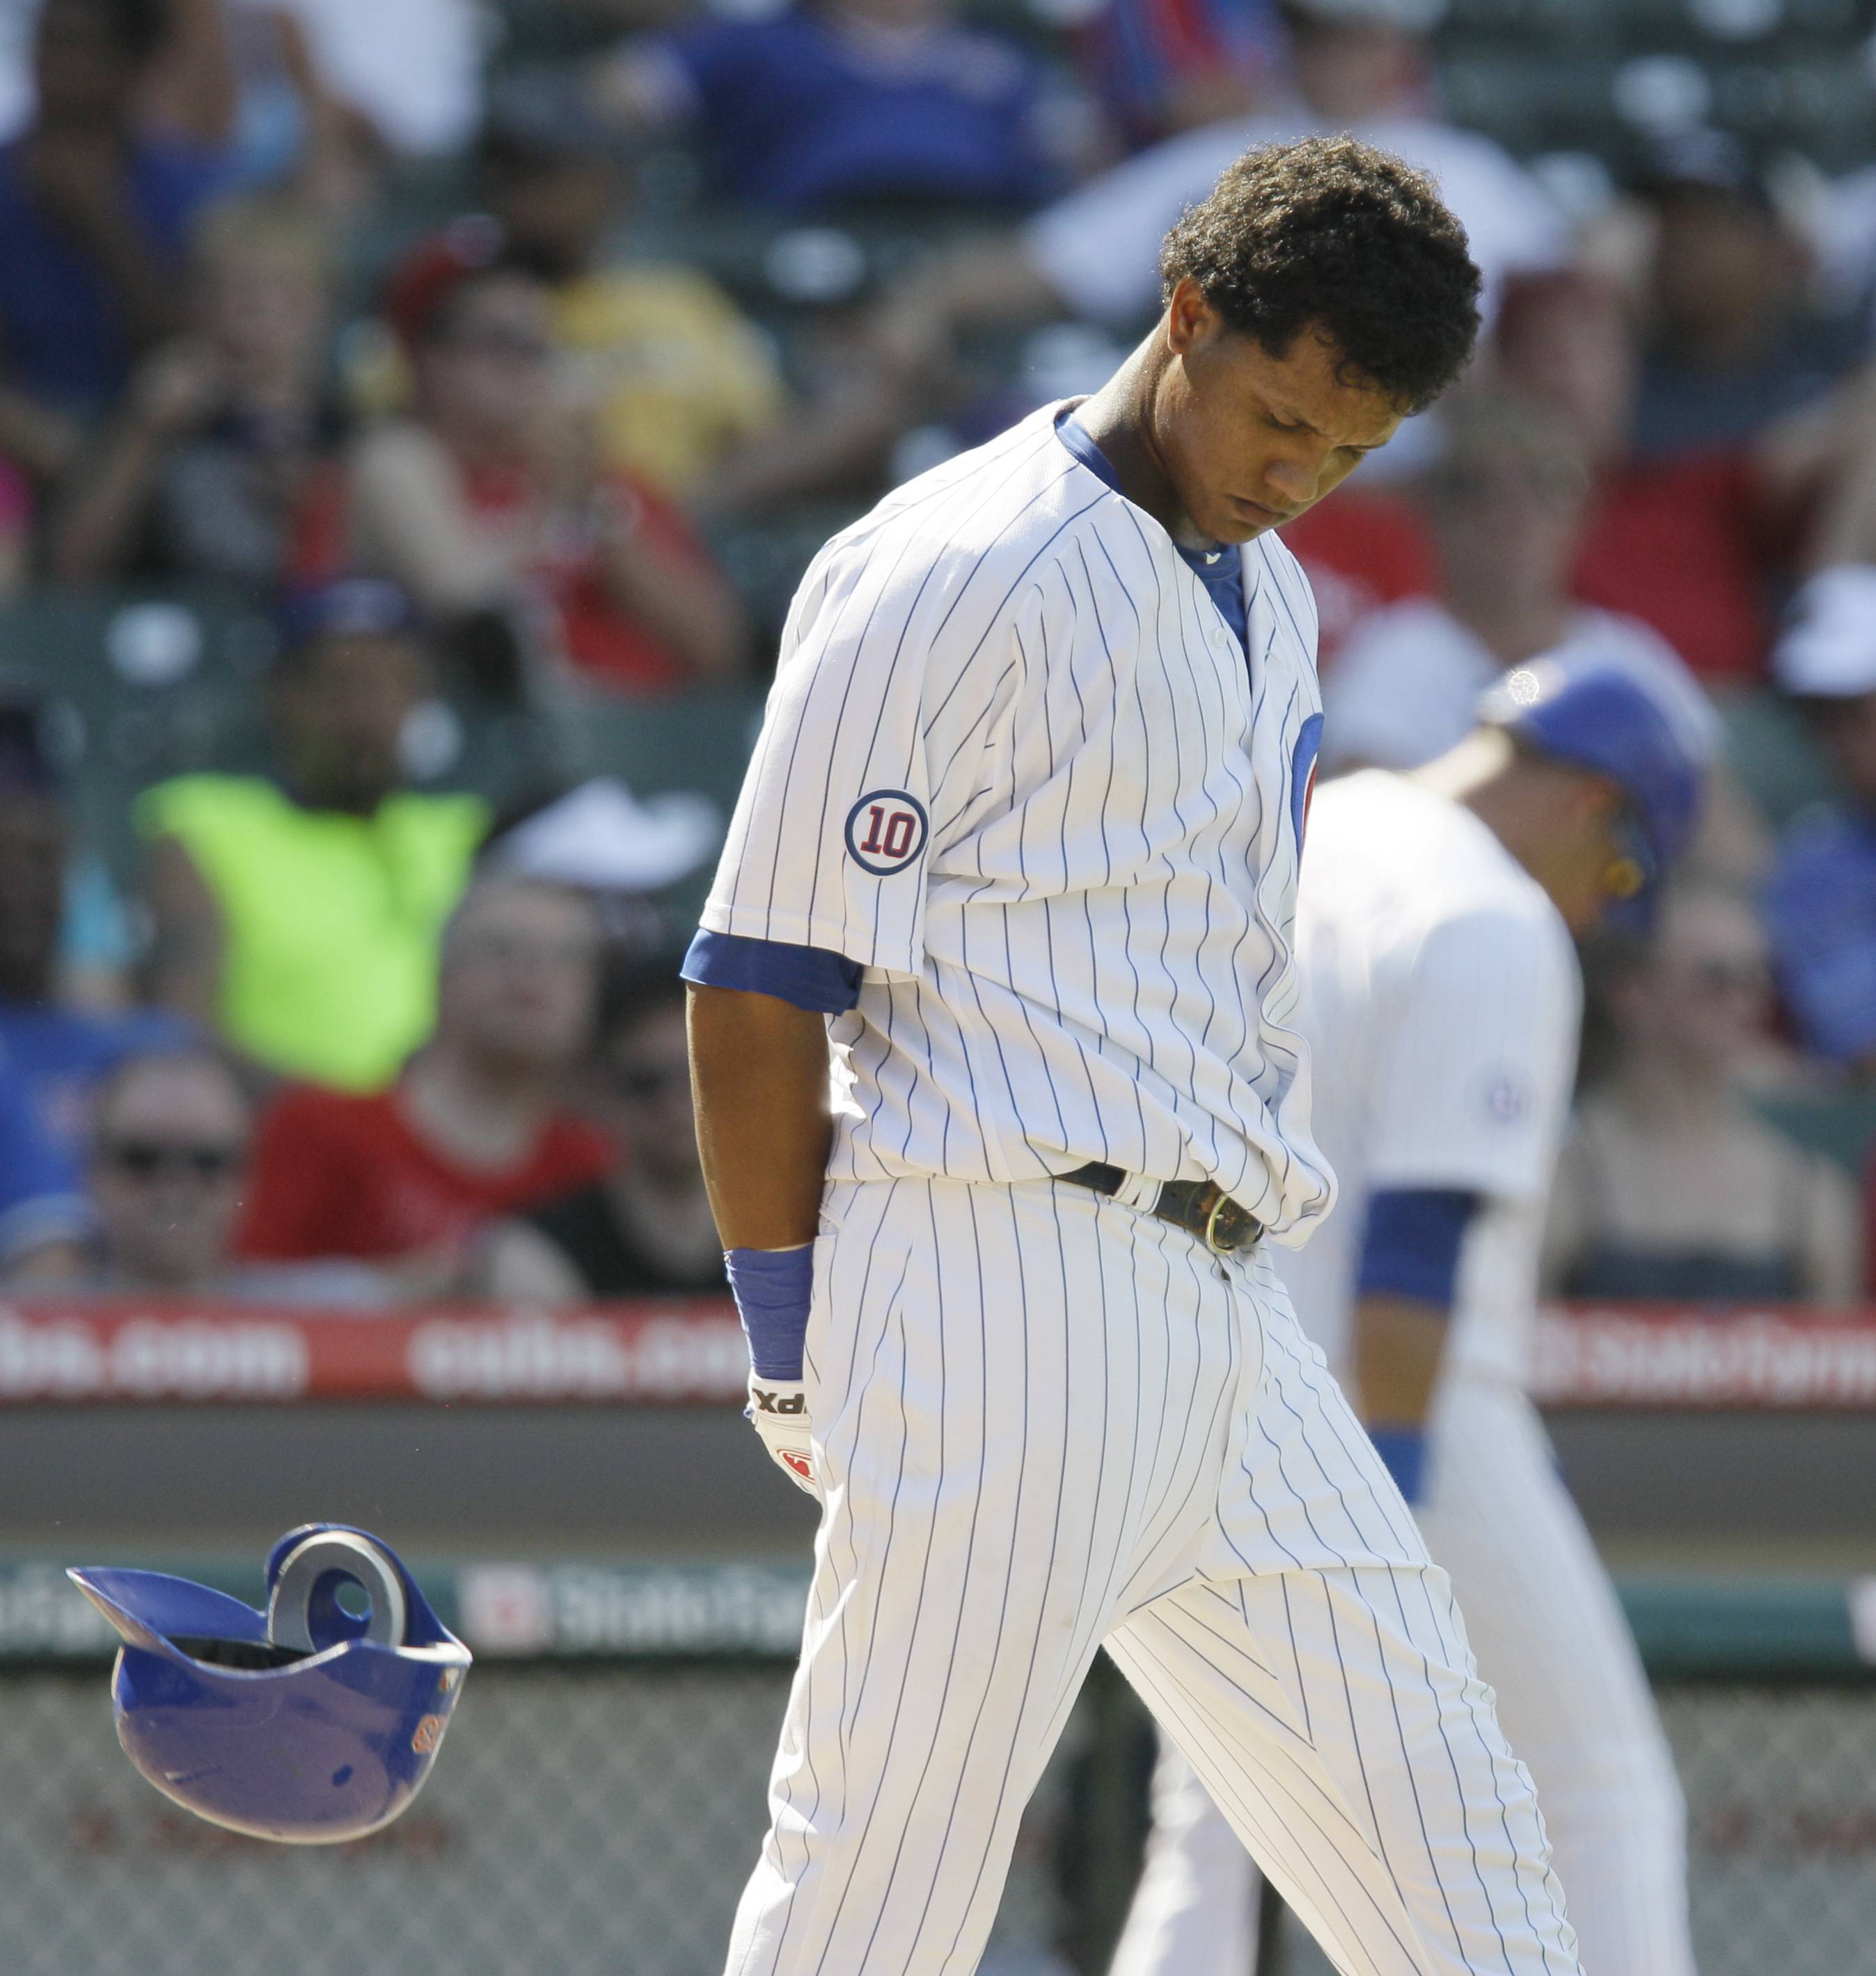 Starlin Castro reacts after striking out during the eighth inning against the Philadelphia Phillies Wednesday at Wrigley Field. The Cubs lost 9-1.